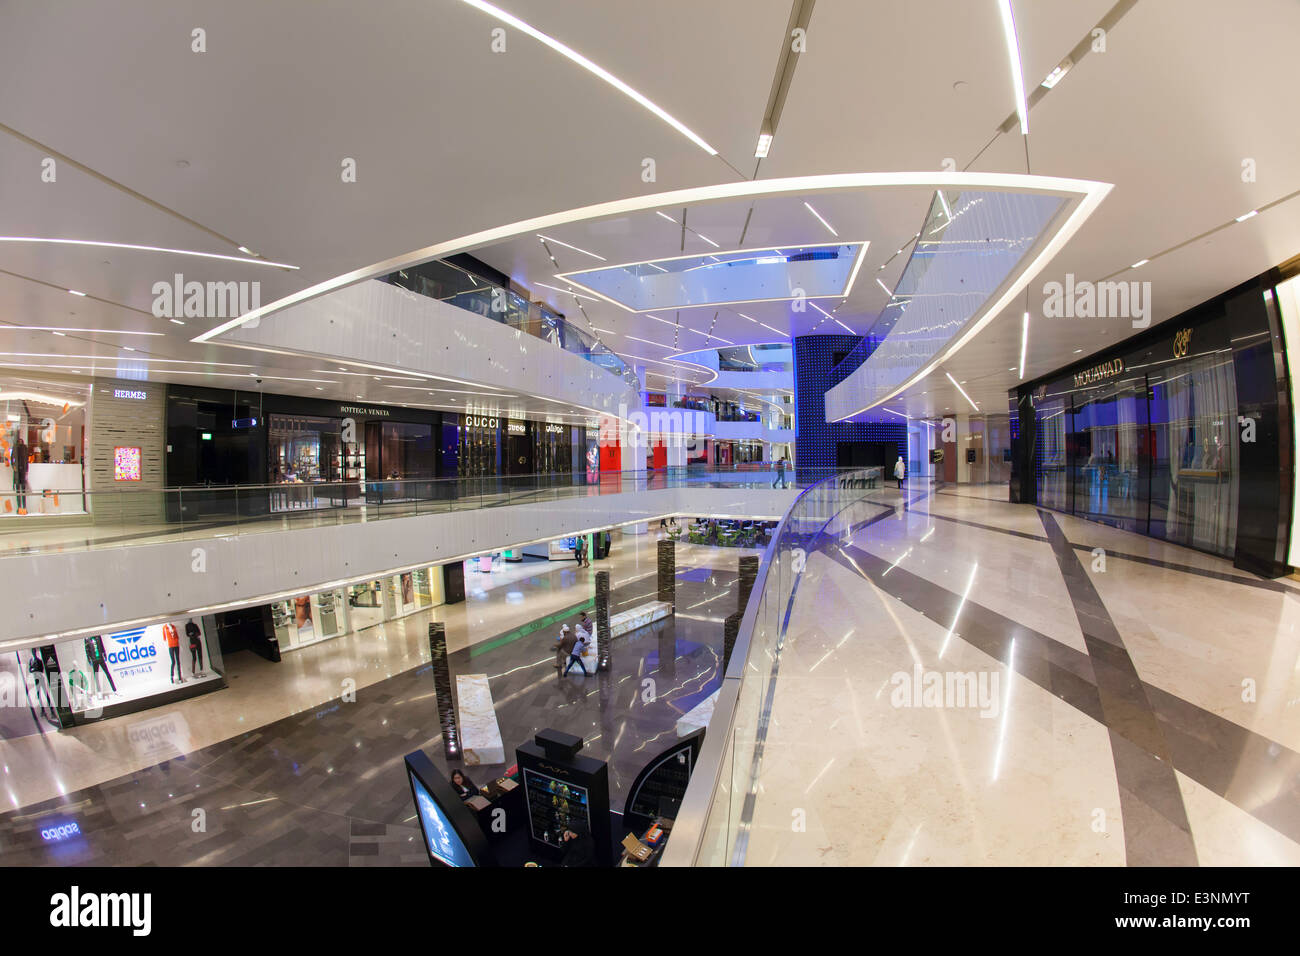 Kuwait City, Al Hamra Tower, includes a luxury business and shopping center completed in 2011 - Stock Image